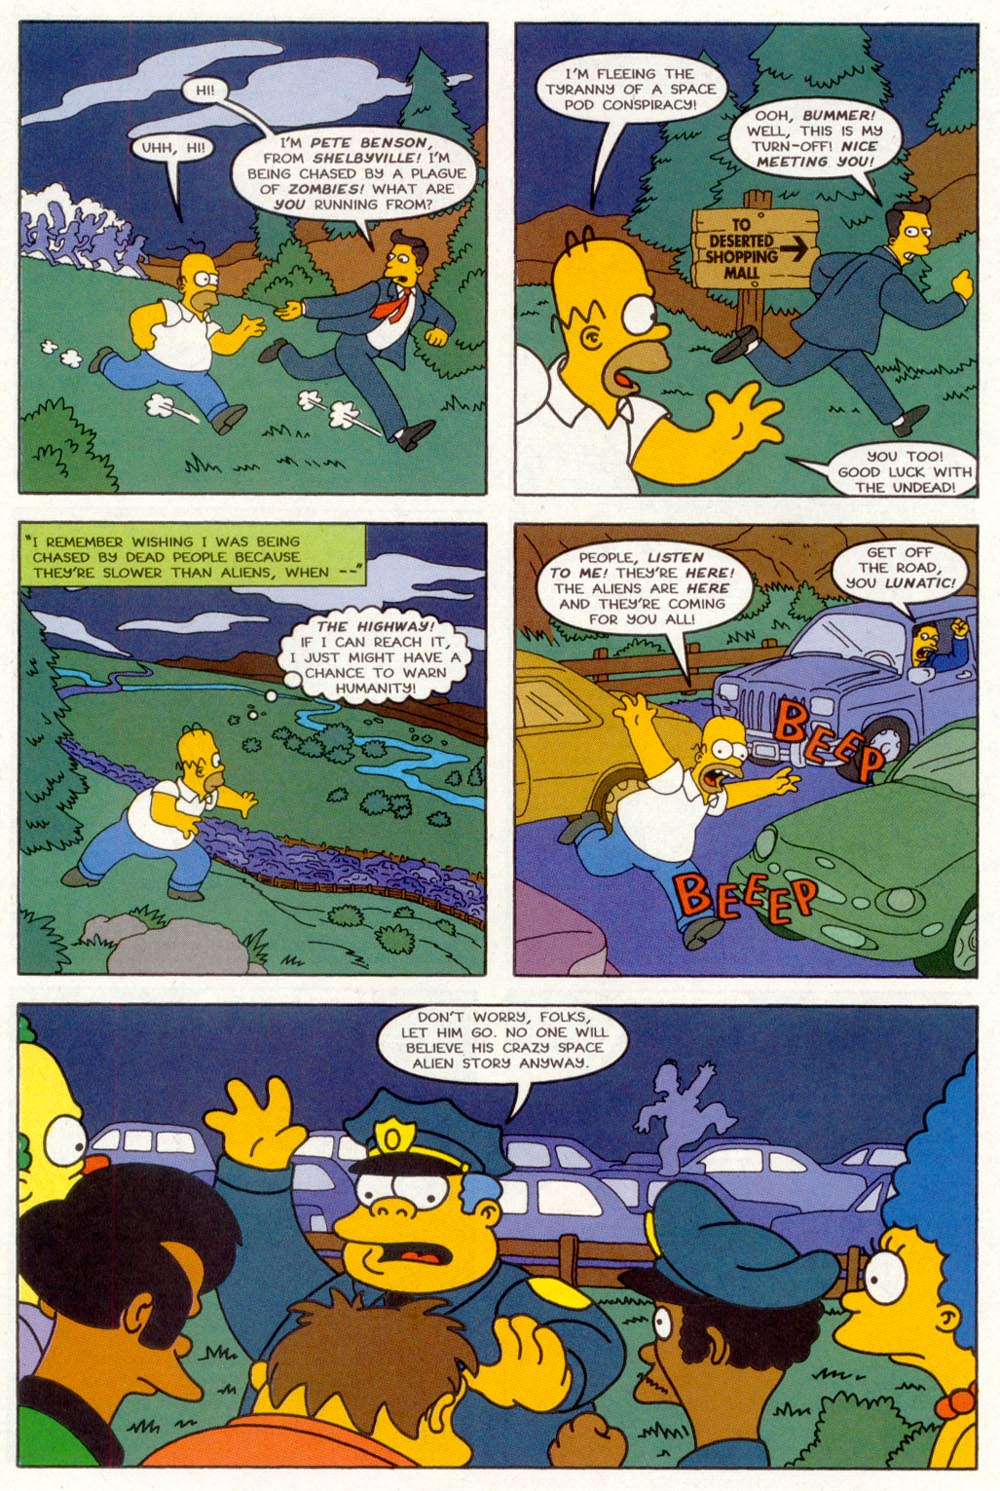 Read online Treehouse of Horror comic -  Issue #3 - 21